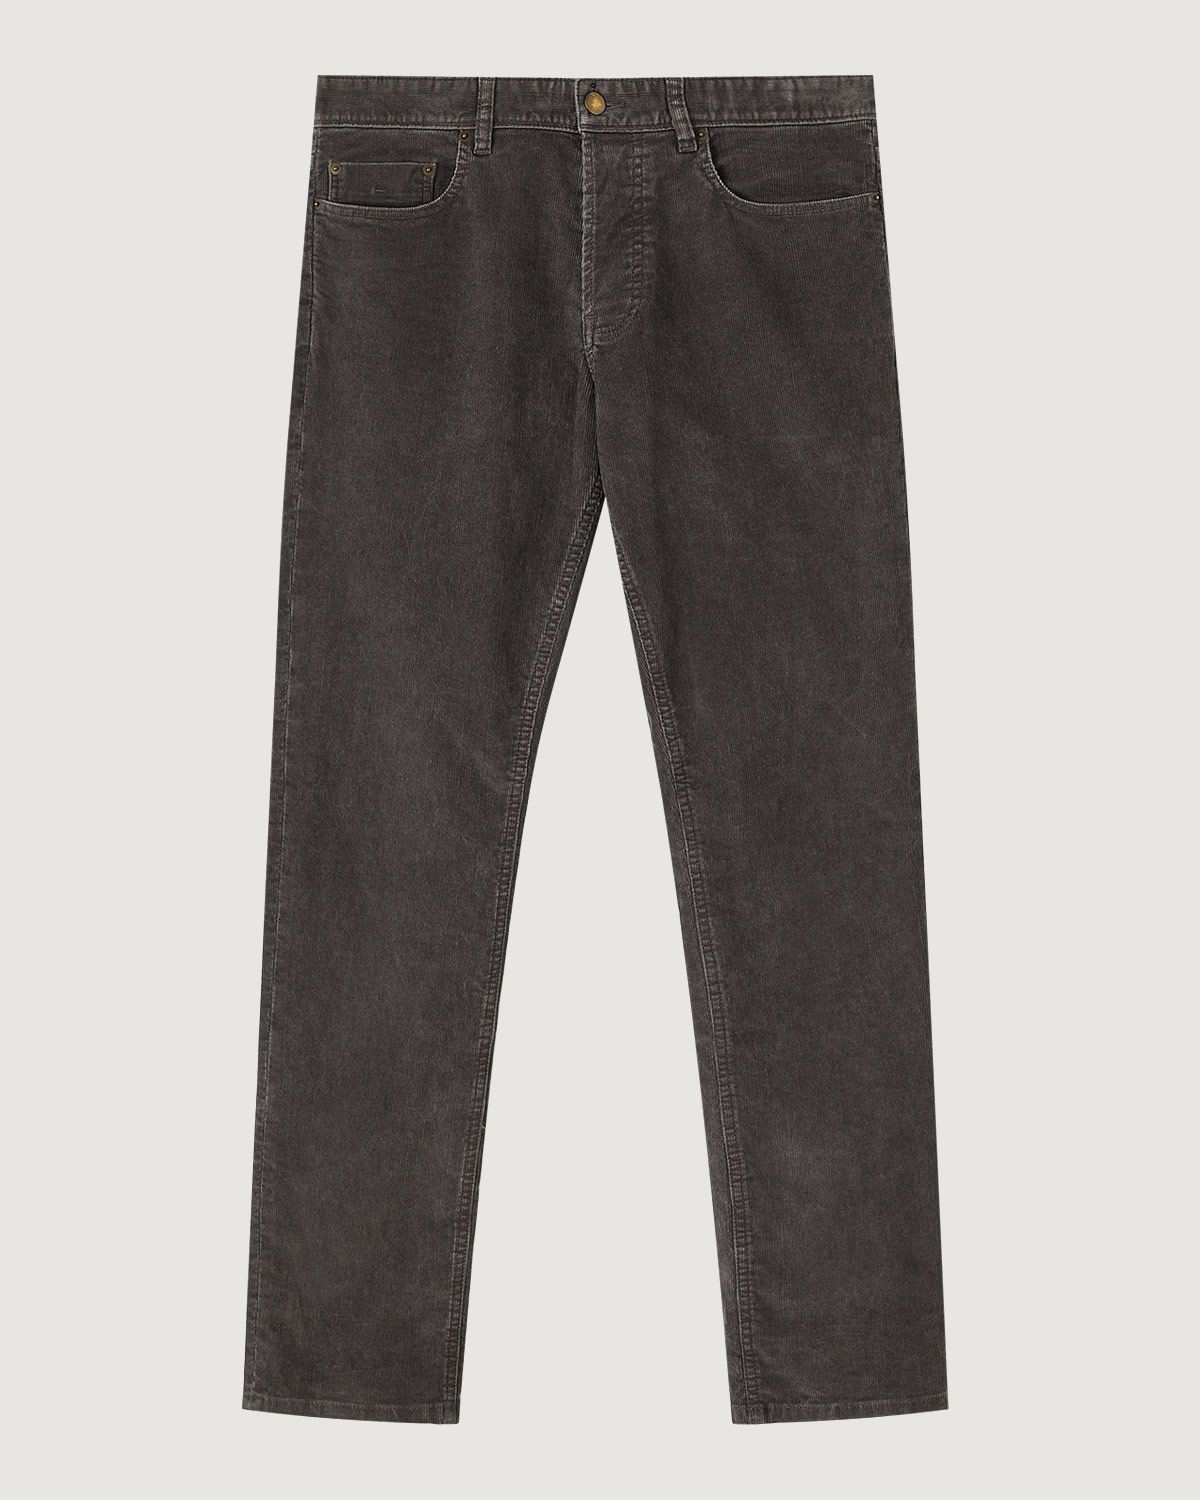 Lomas 5 Pocket Trouser